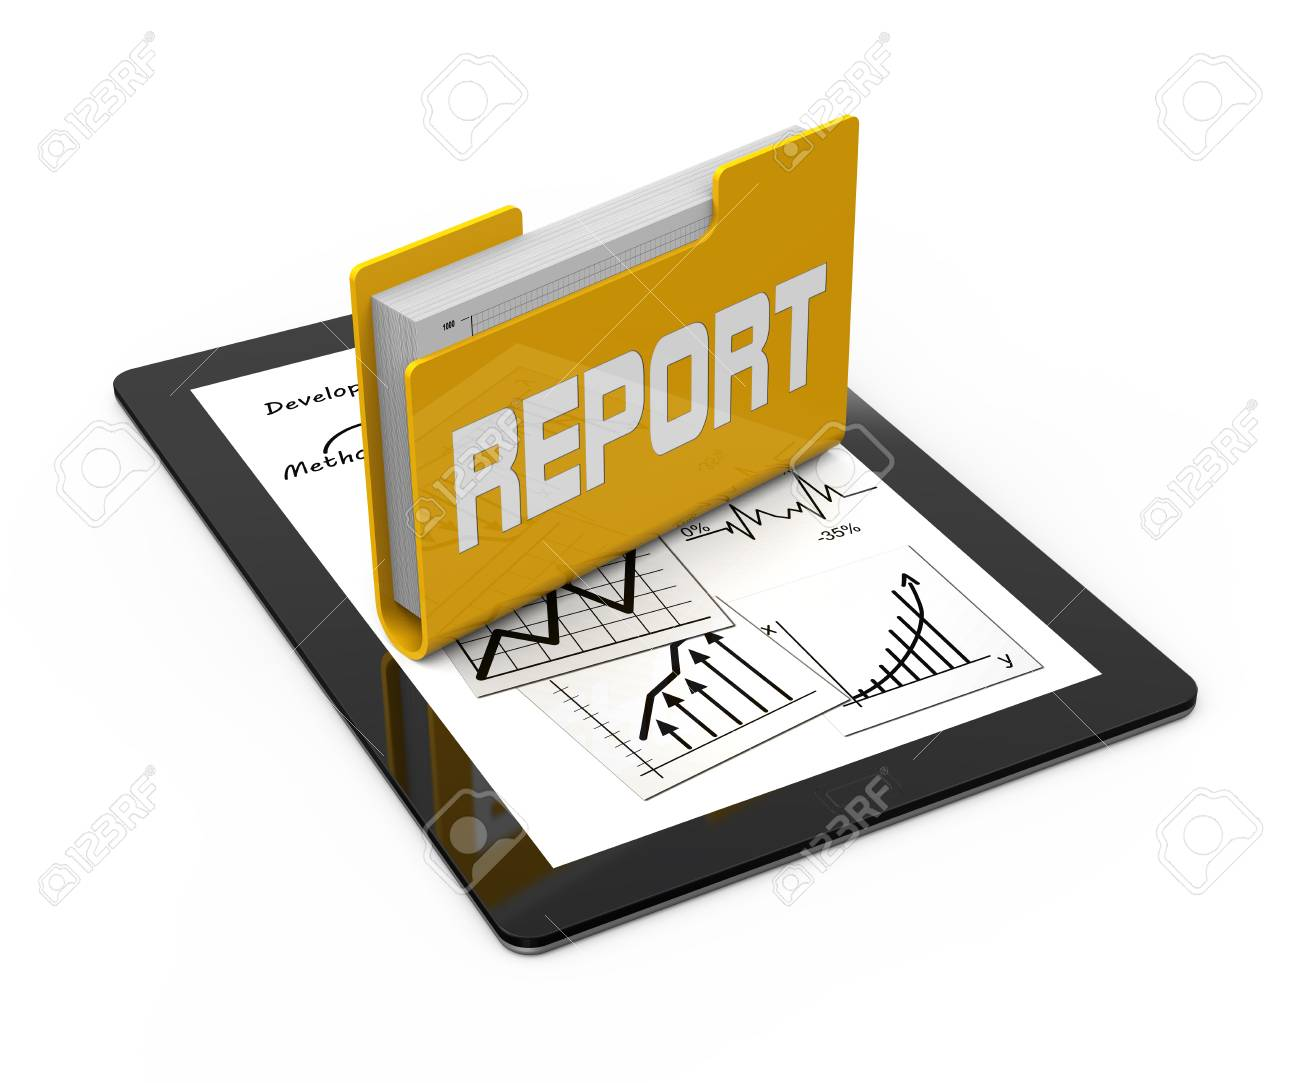 Computer tablet with business documents - 23387967